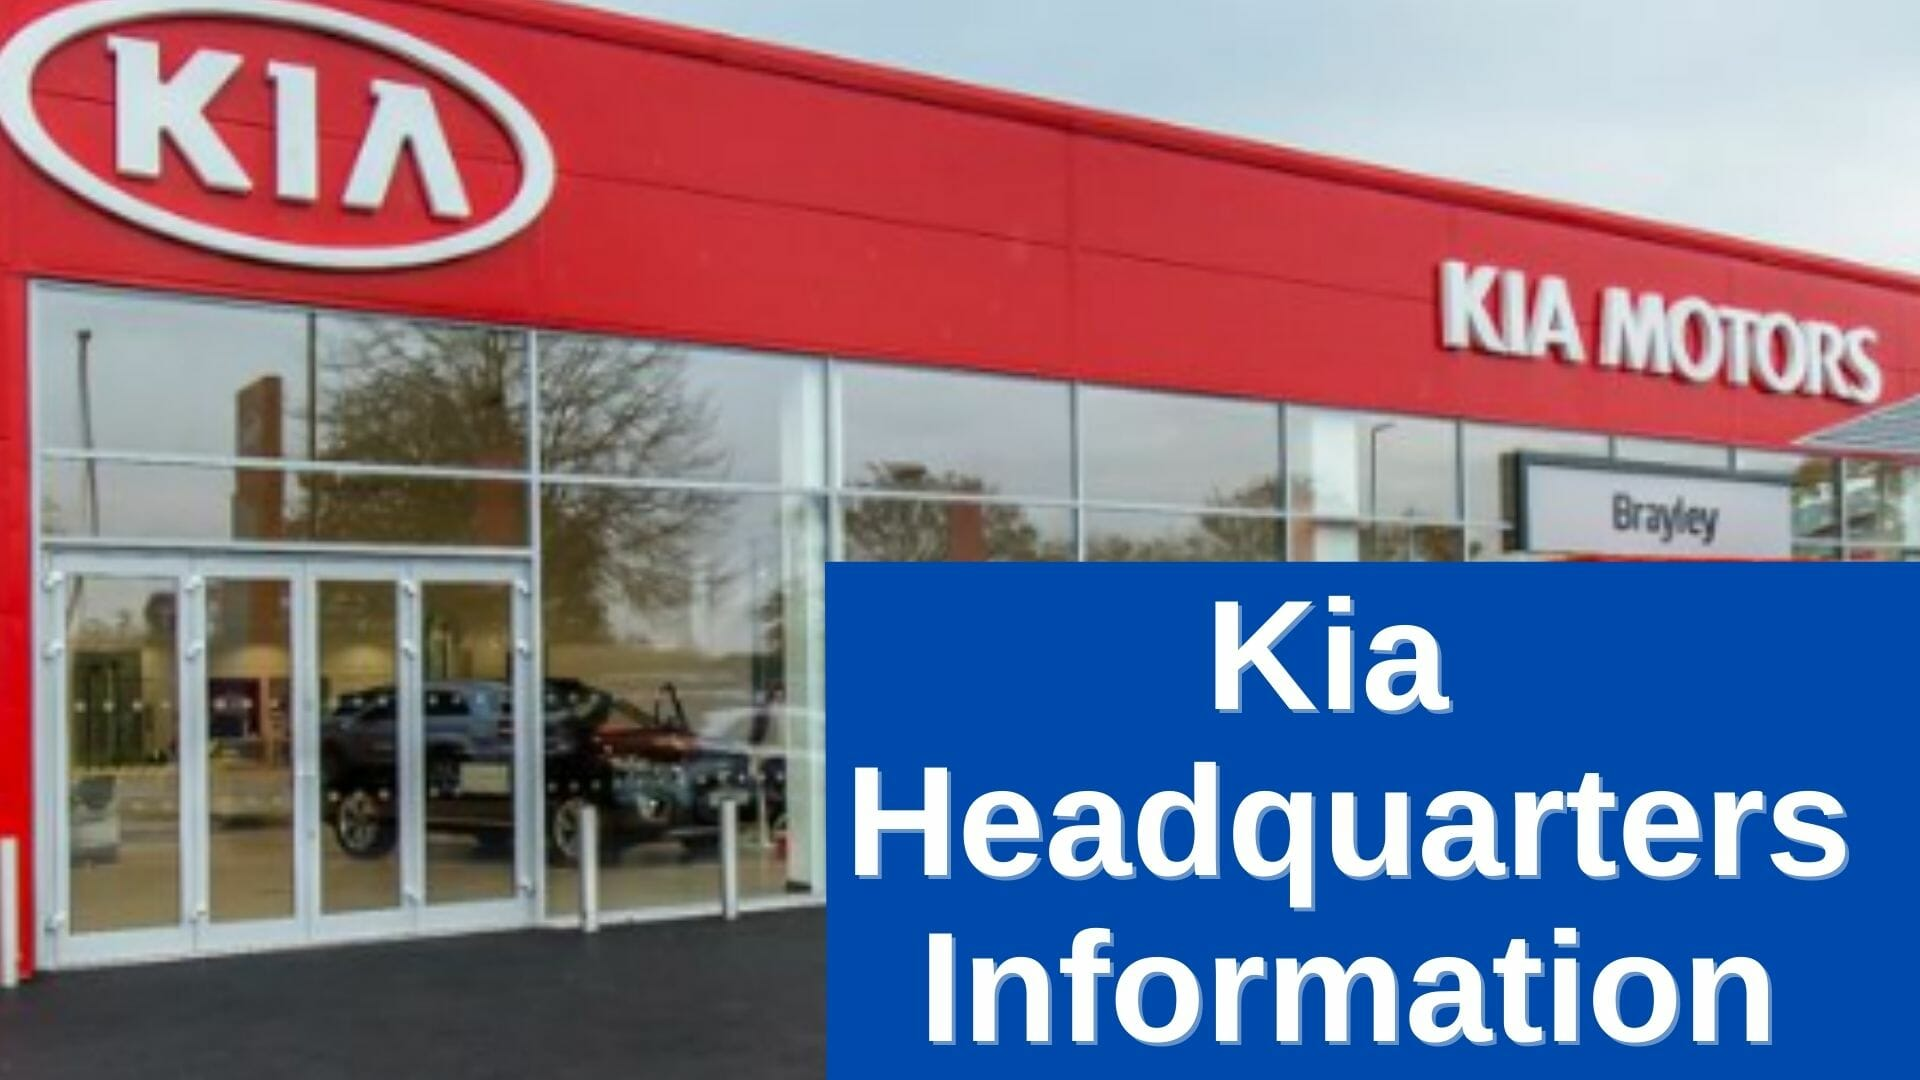 Kia Headquarters Information